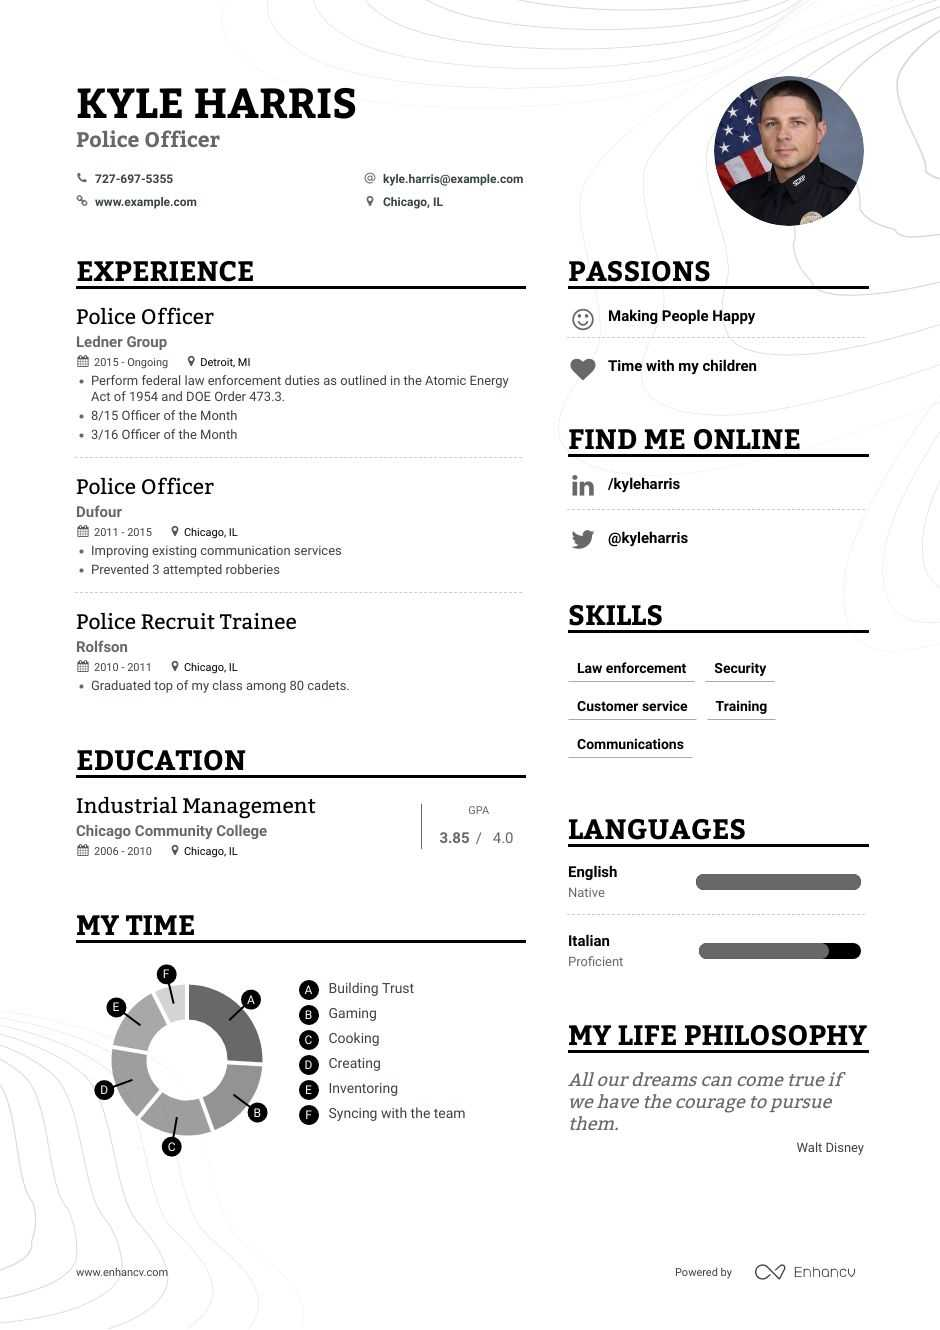 top police officer resume examples expert tips enhancv law enforcement template canva Resume Law Enforcement Resume Template